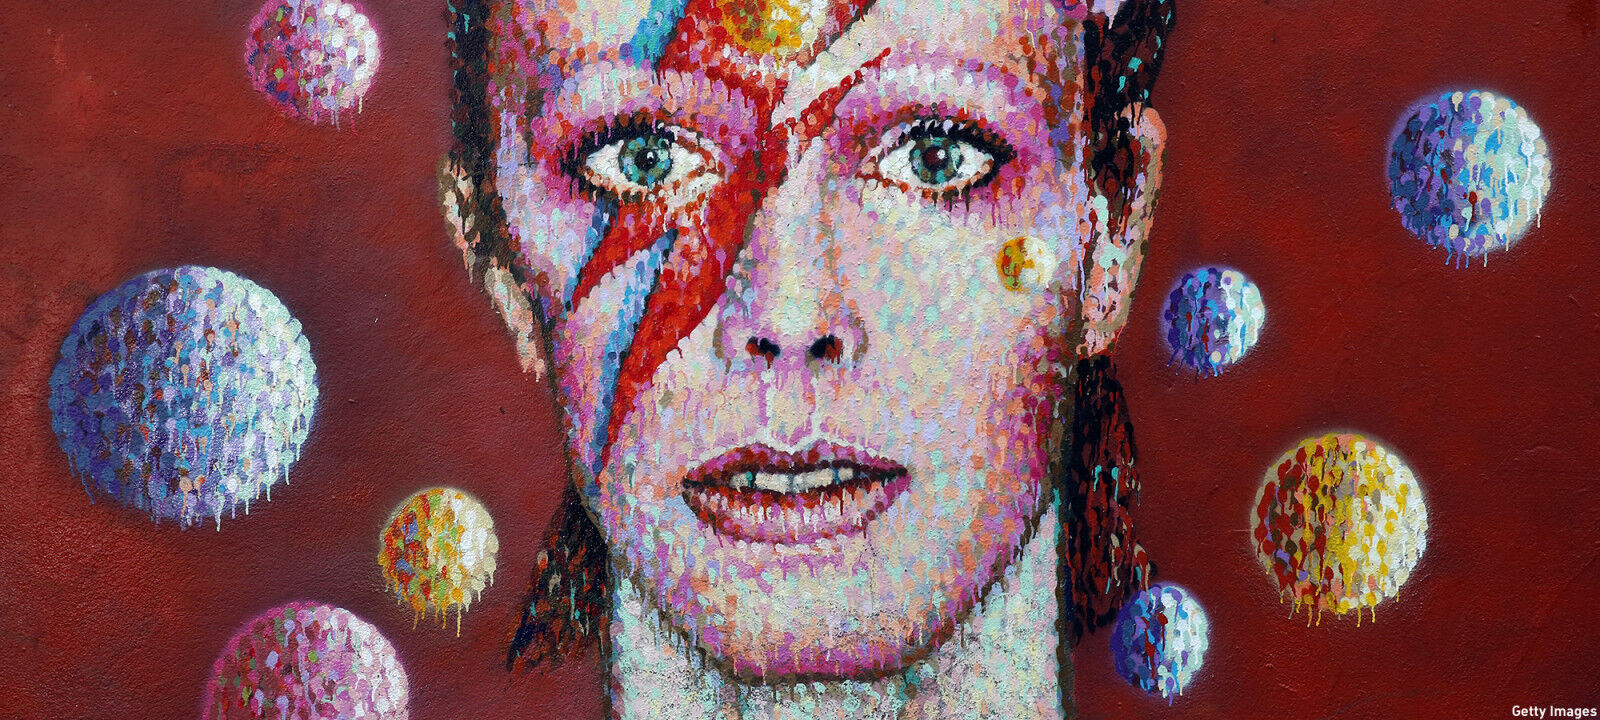 anglo 2000x1125 david bowie mural e1452636640591